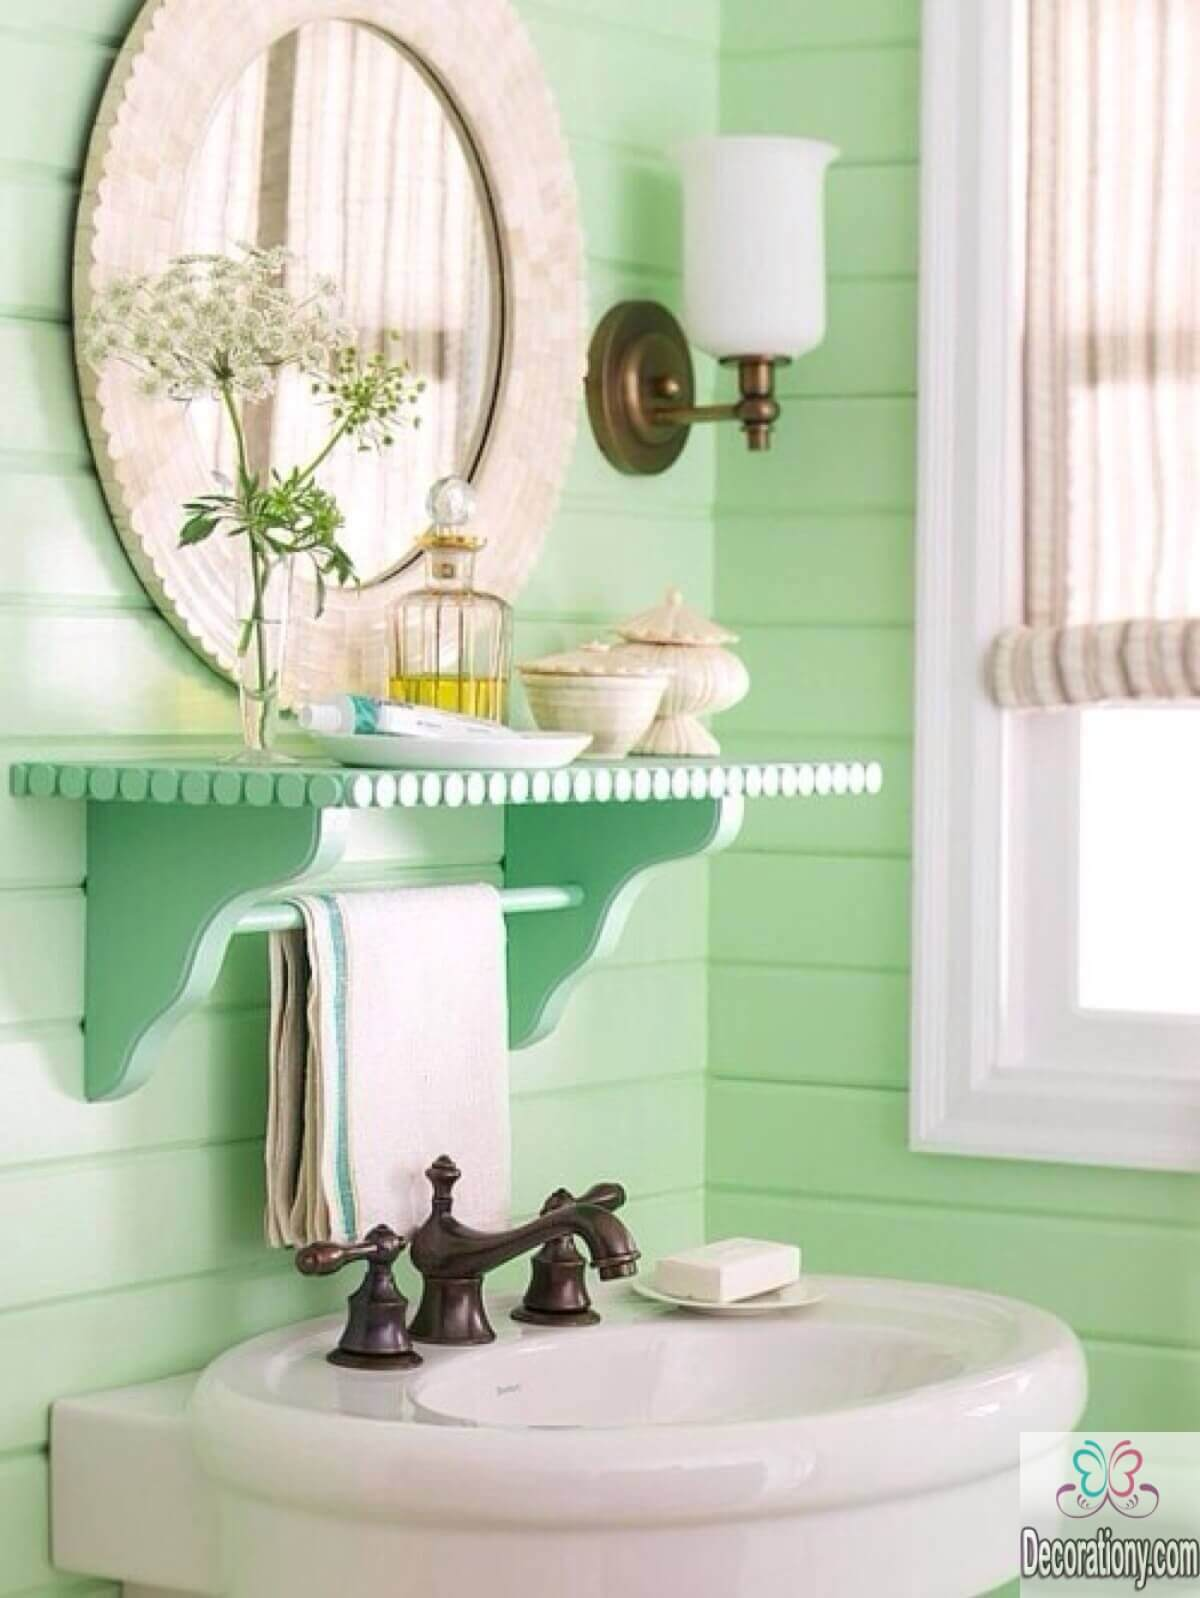 10 affordable colors for small bathrooms decoration y for Small bathroom colors